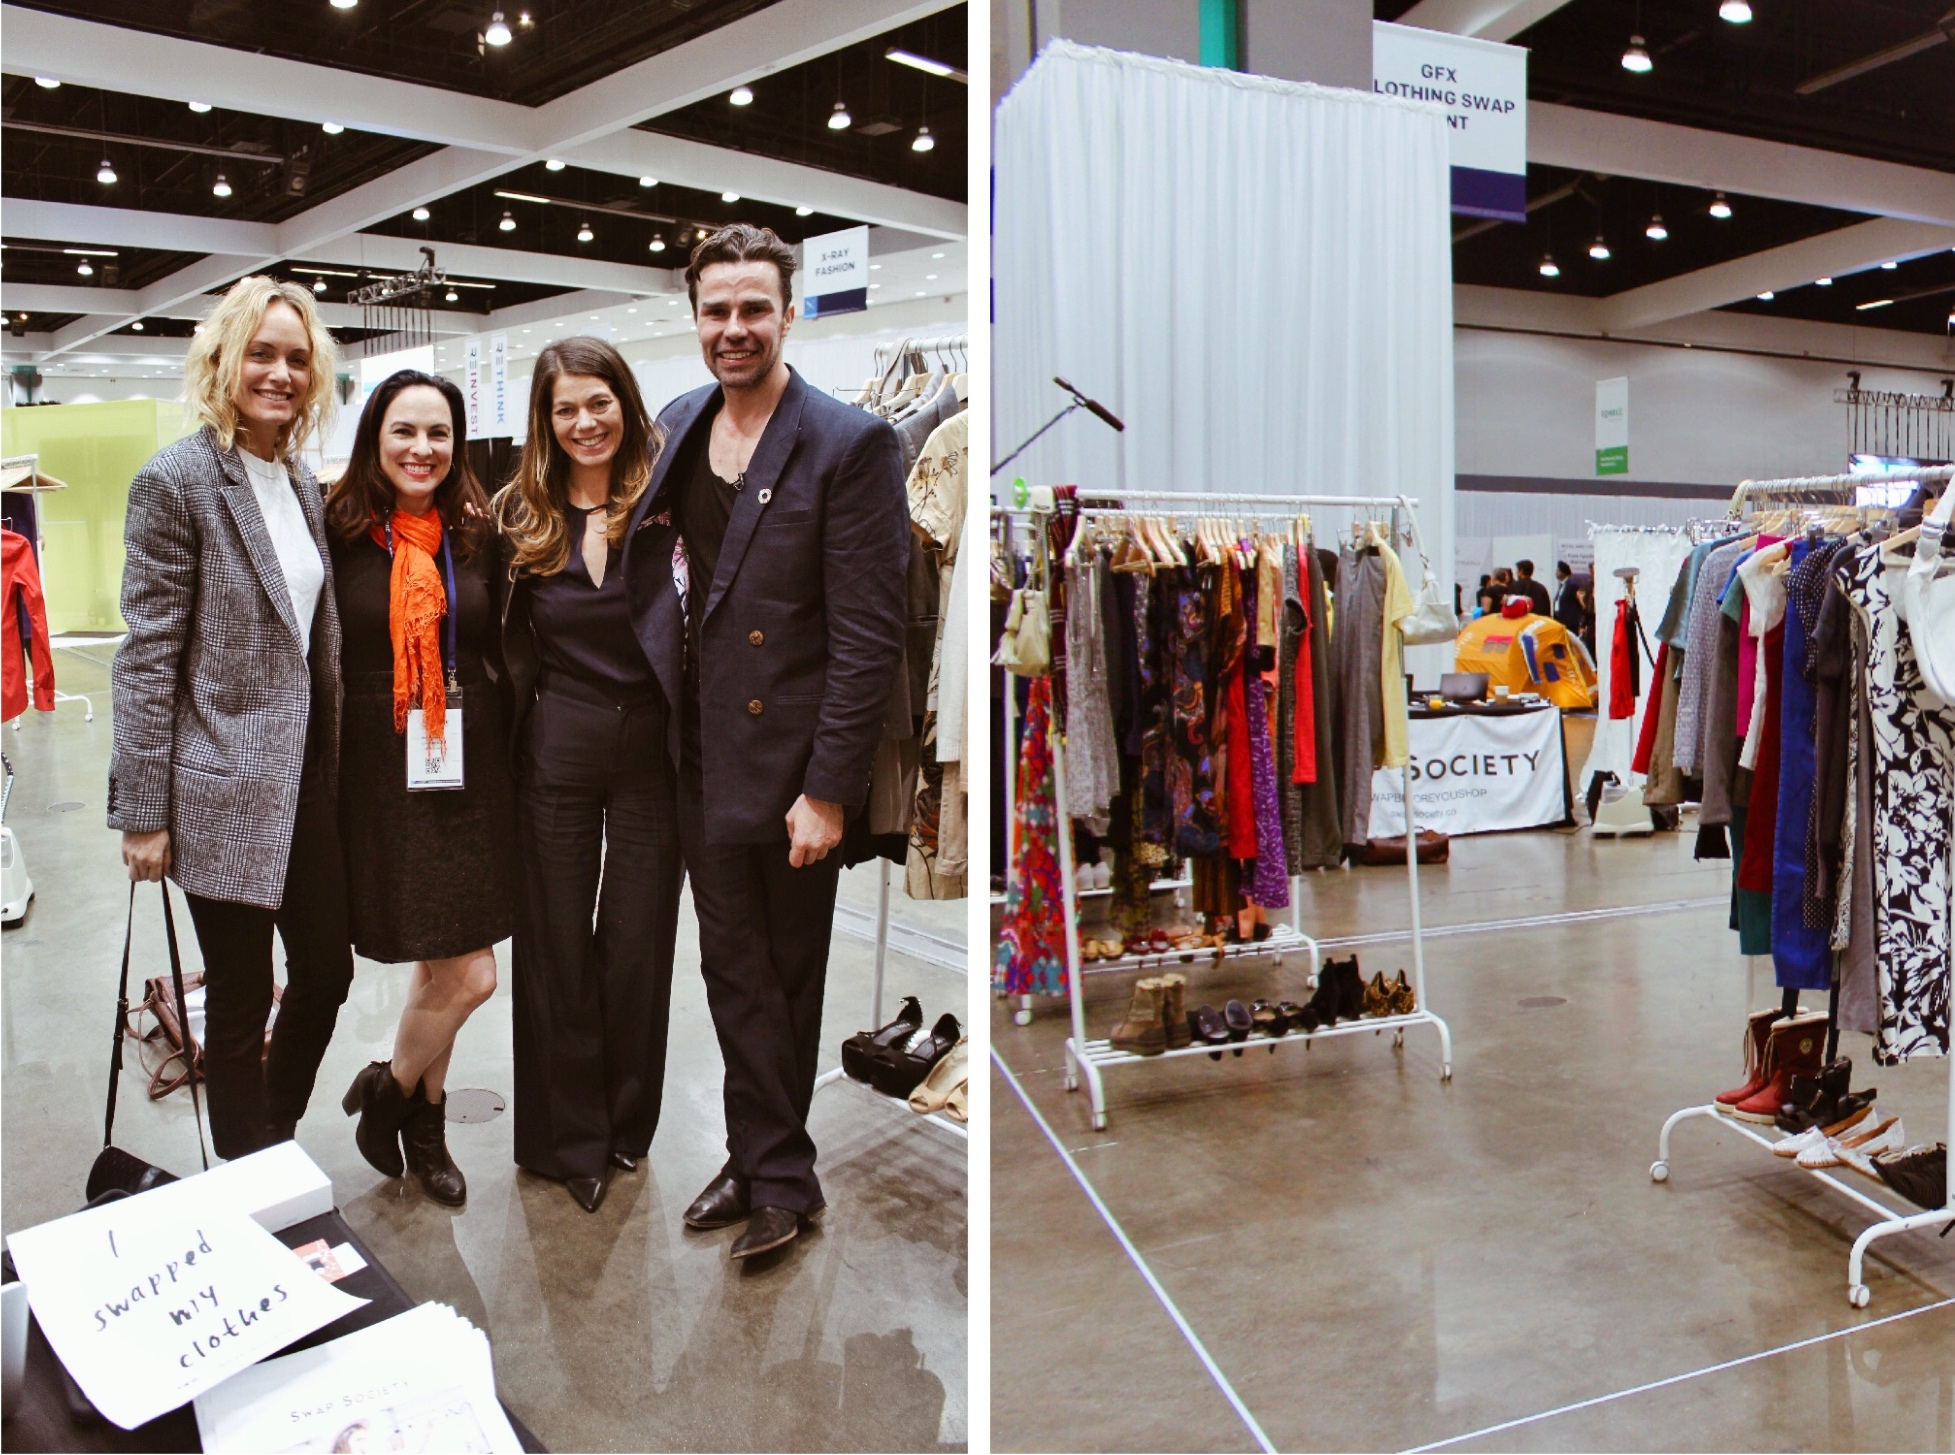 clothing swap remode swap society amber valletta nicole robertson patrick duffy global fashion exchange